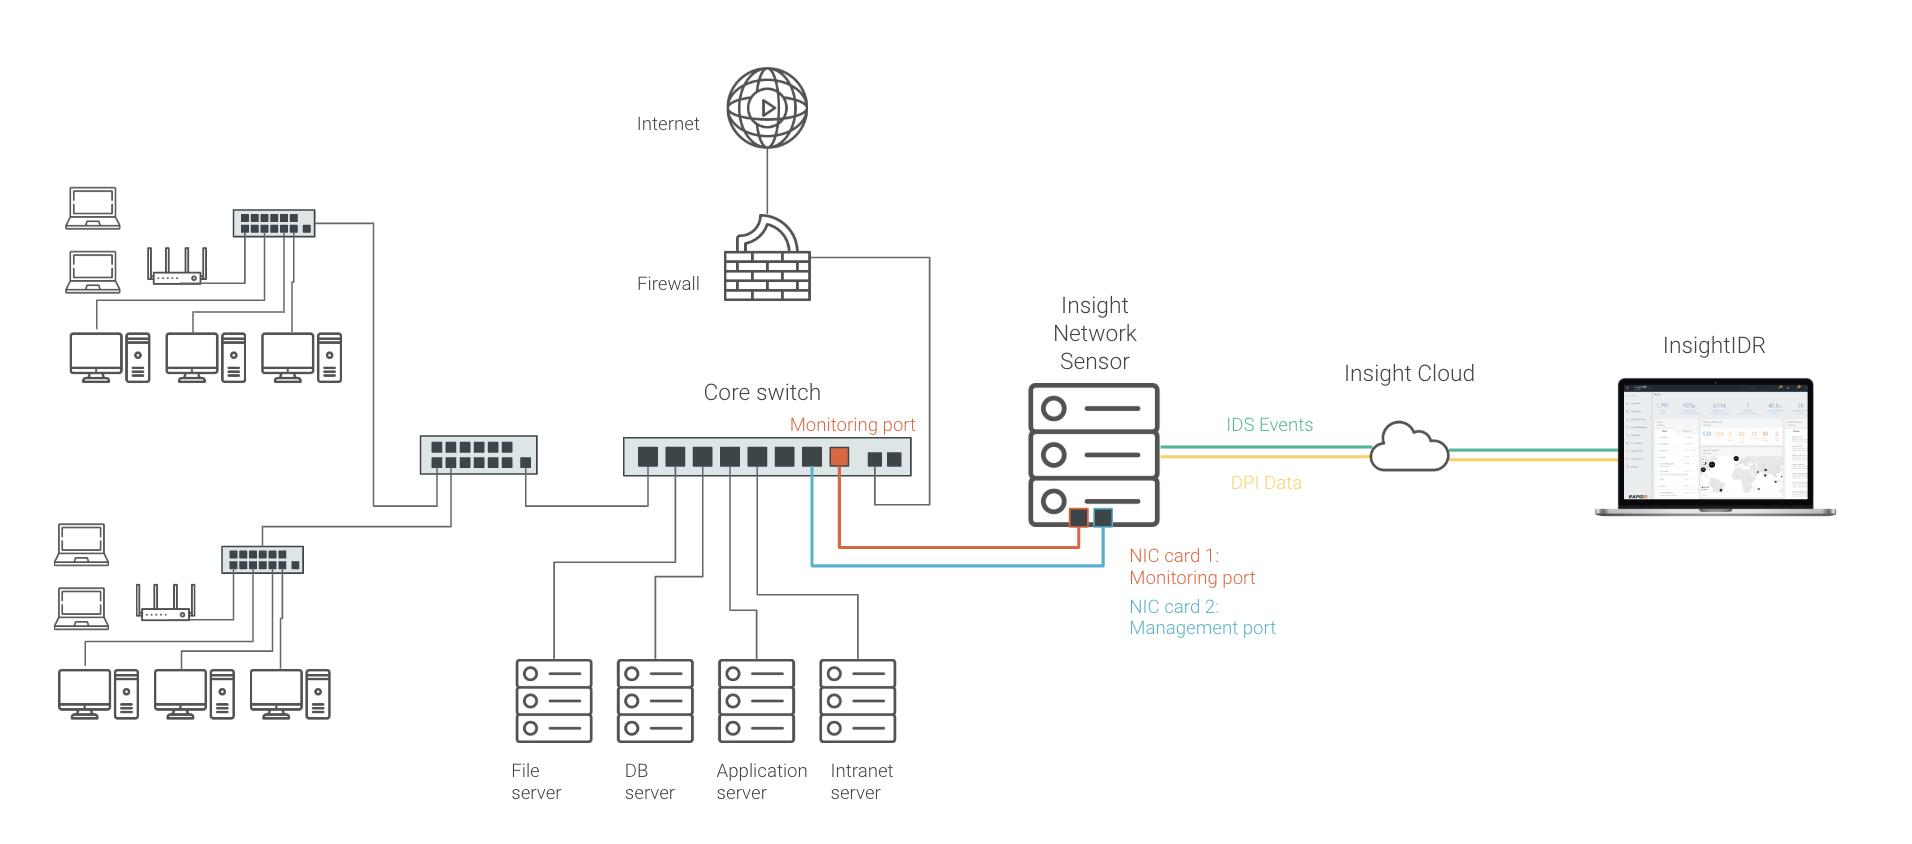 How InsightIDR monitors and analyzes network traffic